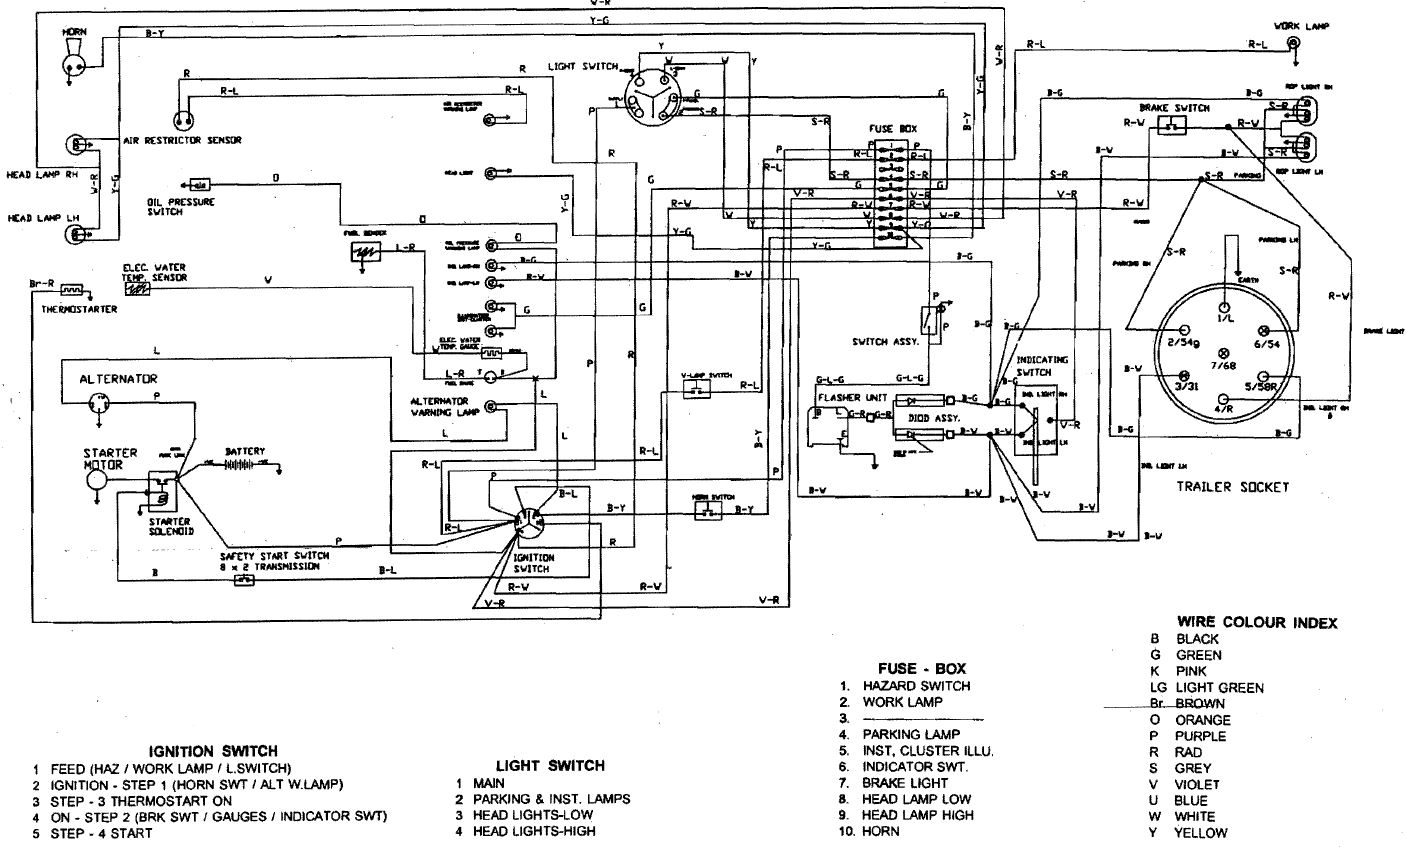 Ignition Switch Wiring Diagram Ford Regulator Wiring Diagram Ford 555 Wiring  Diagram